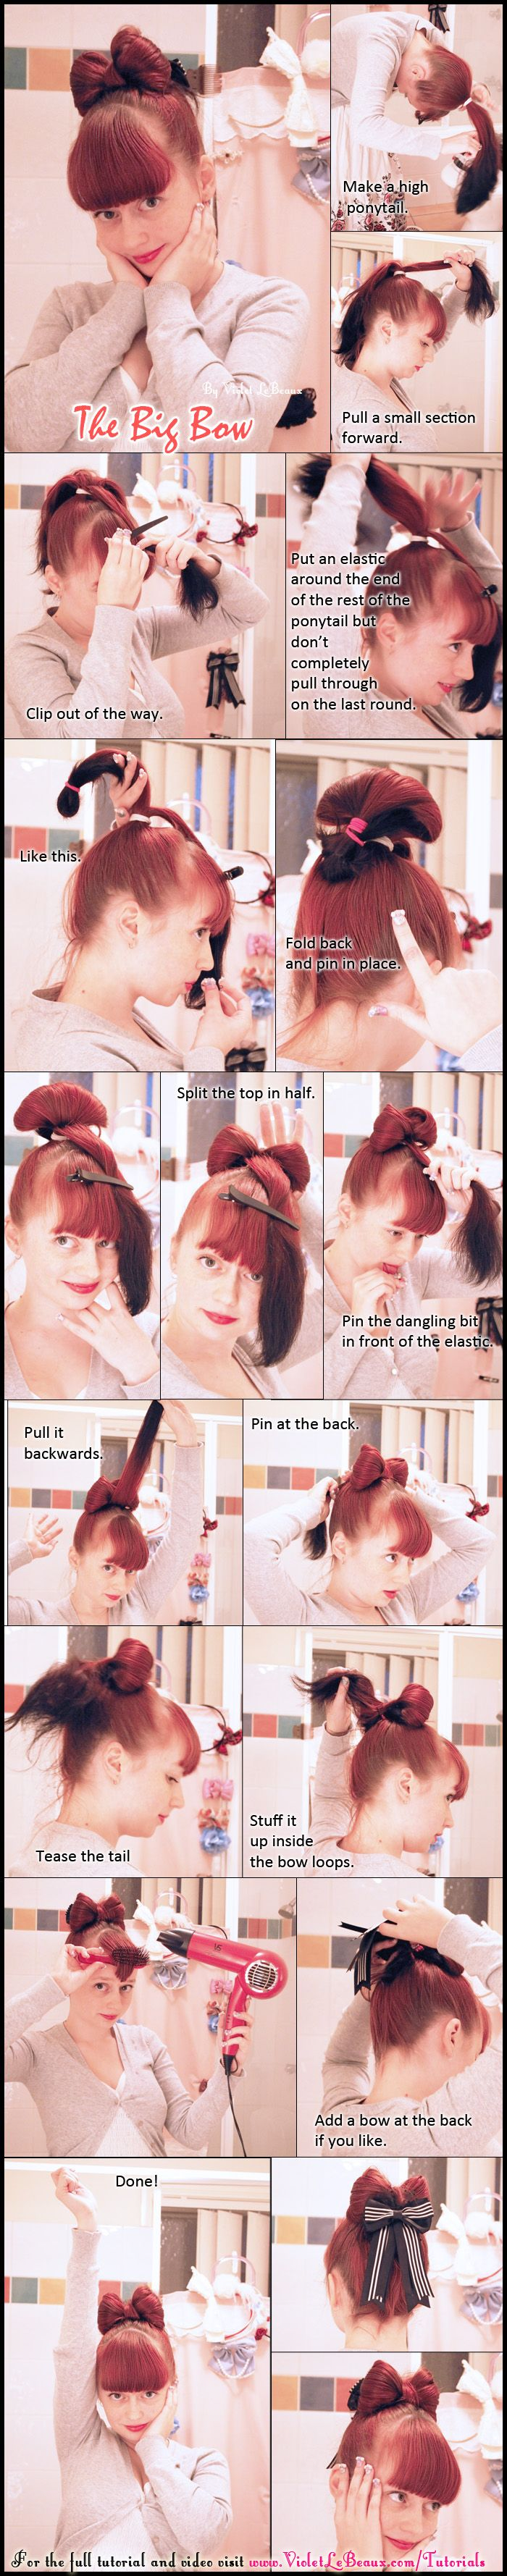 A veeeeeery old tutorial of mine ;)    This one is on how to make the ever popular bow hair style.    Original tutorial here: http://www.violetlebeaux.com/2009/07/tutorial-bow-hair-style-for-medium-length-hair/  Video version here: http://www.youtube.com/watch?v=klHXSvfr-fk